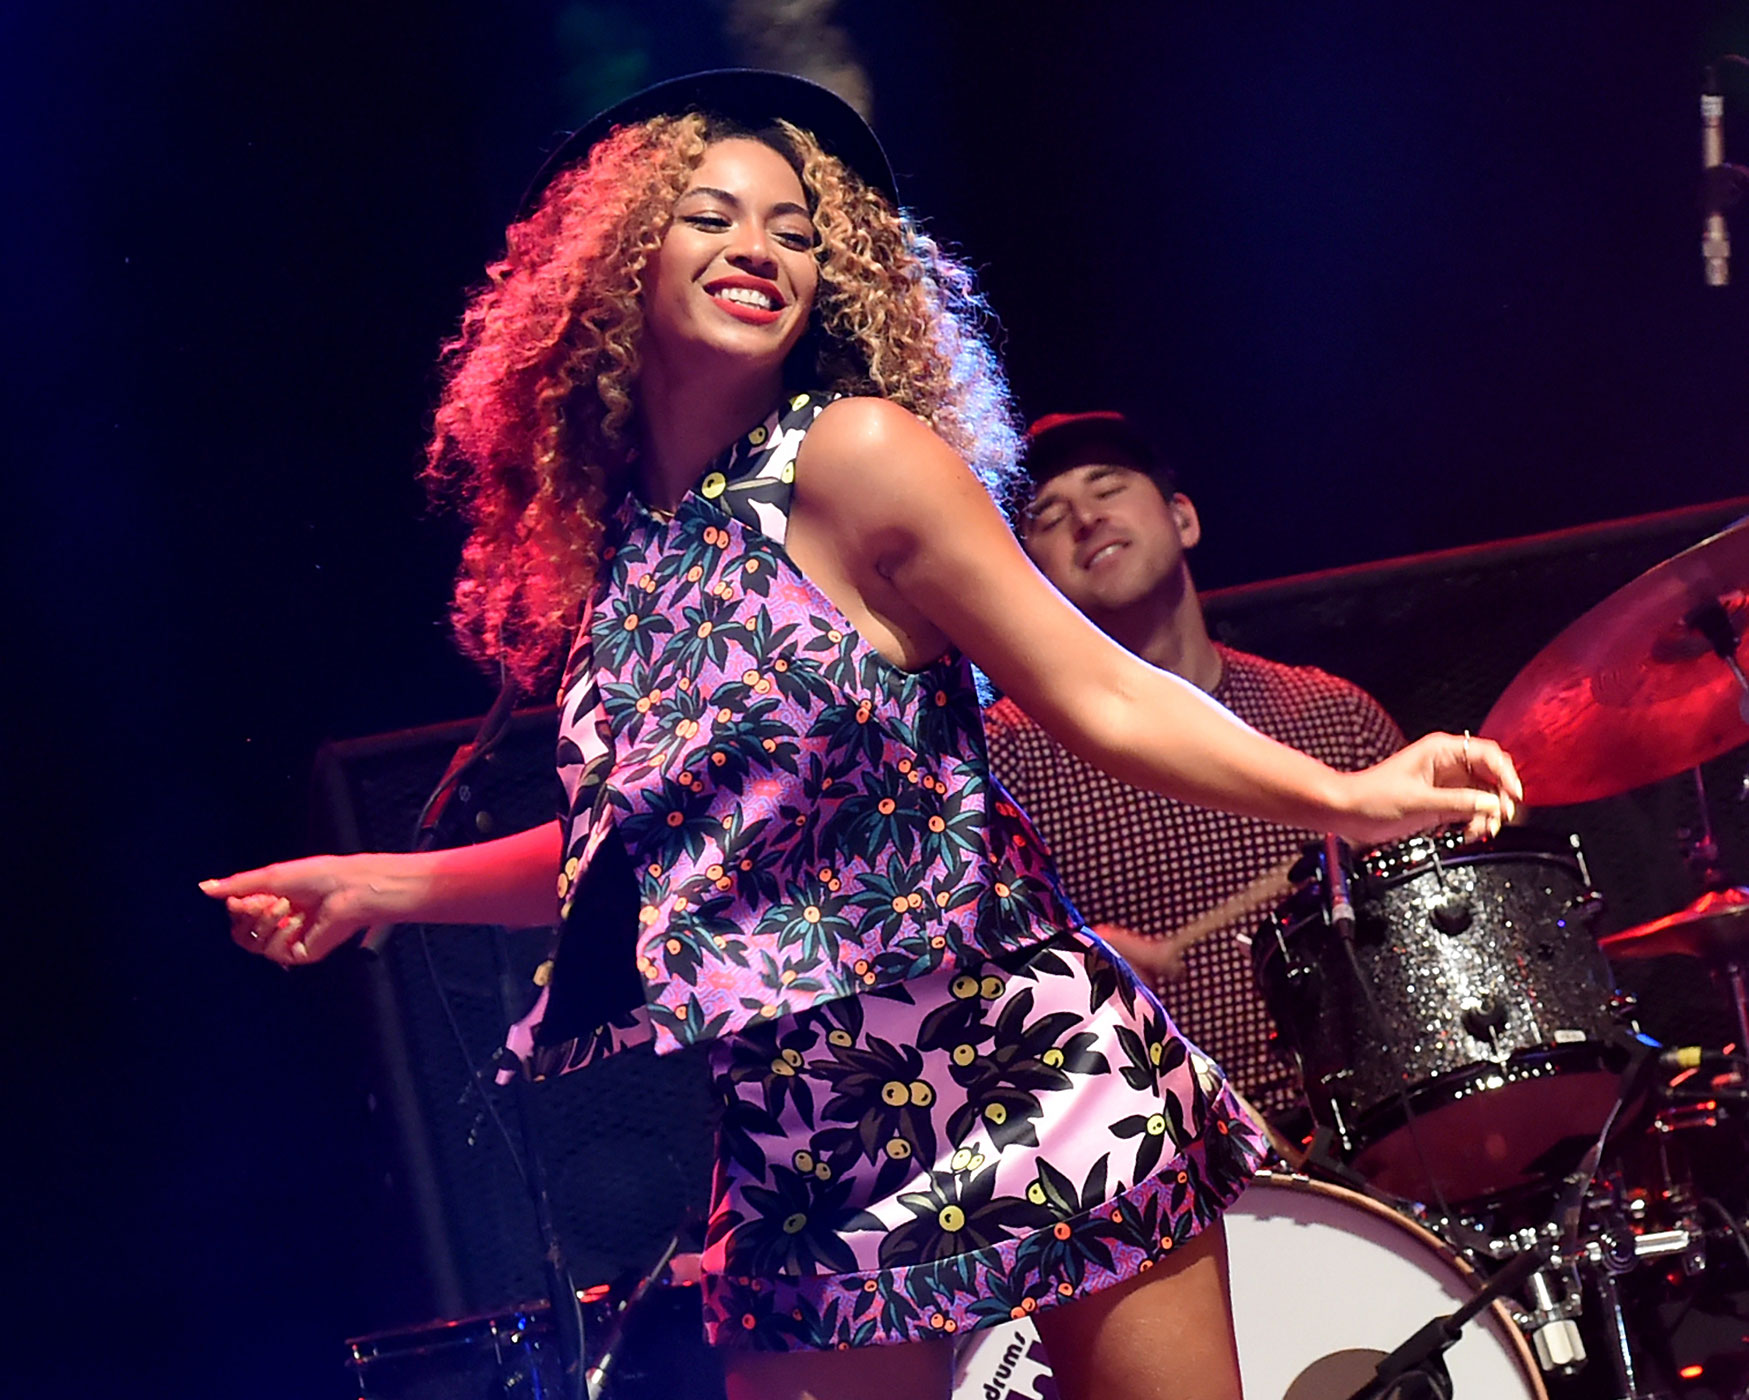 Beyonce performs with her sister Solange onstage during day 2 of the 2014 Coachella Valley Music & Arts Festival at the Empire Polo Club on April 12, 2014 in Indio, California.